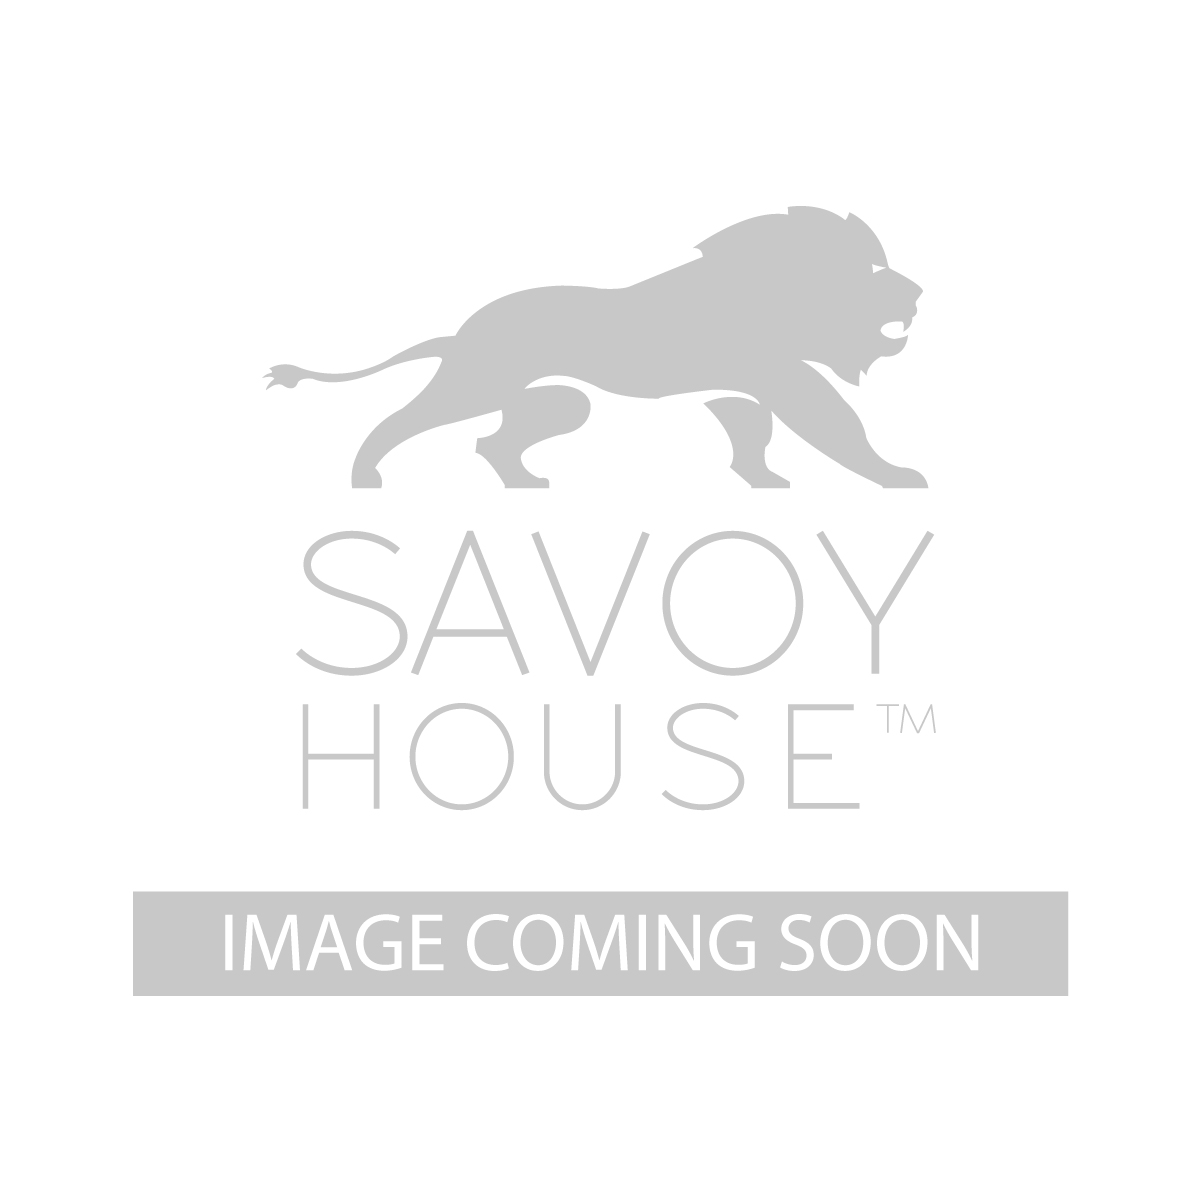 8 4138 2 Sn Scout 2 Light Adjustable Sconce By Savoy House